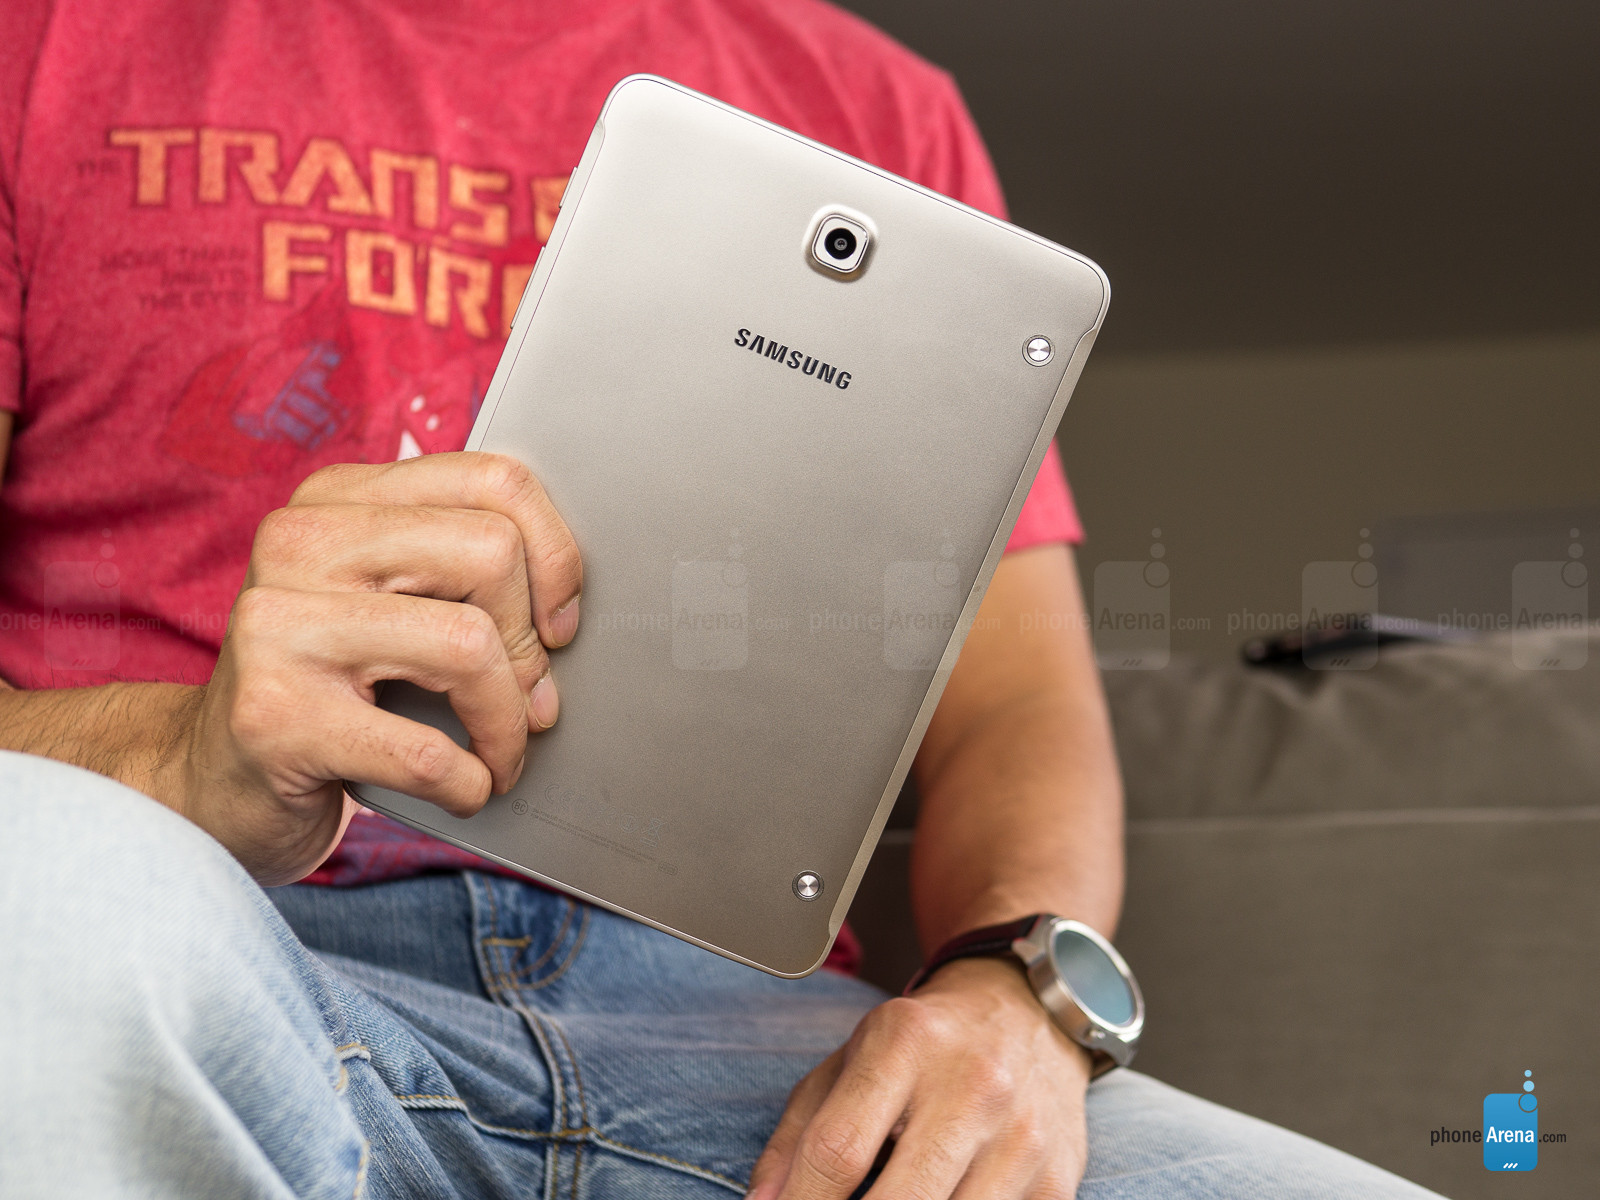 Samsung Galaxy Tab S2 8.0 best budget android tablet 2016 a